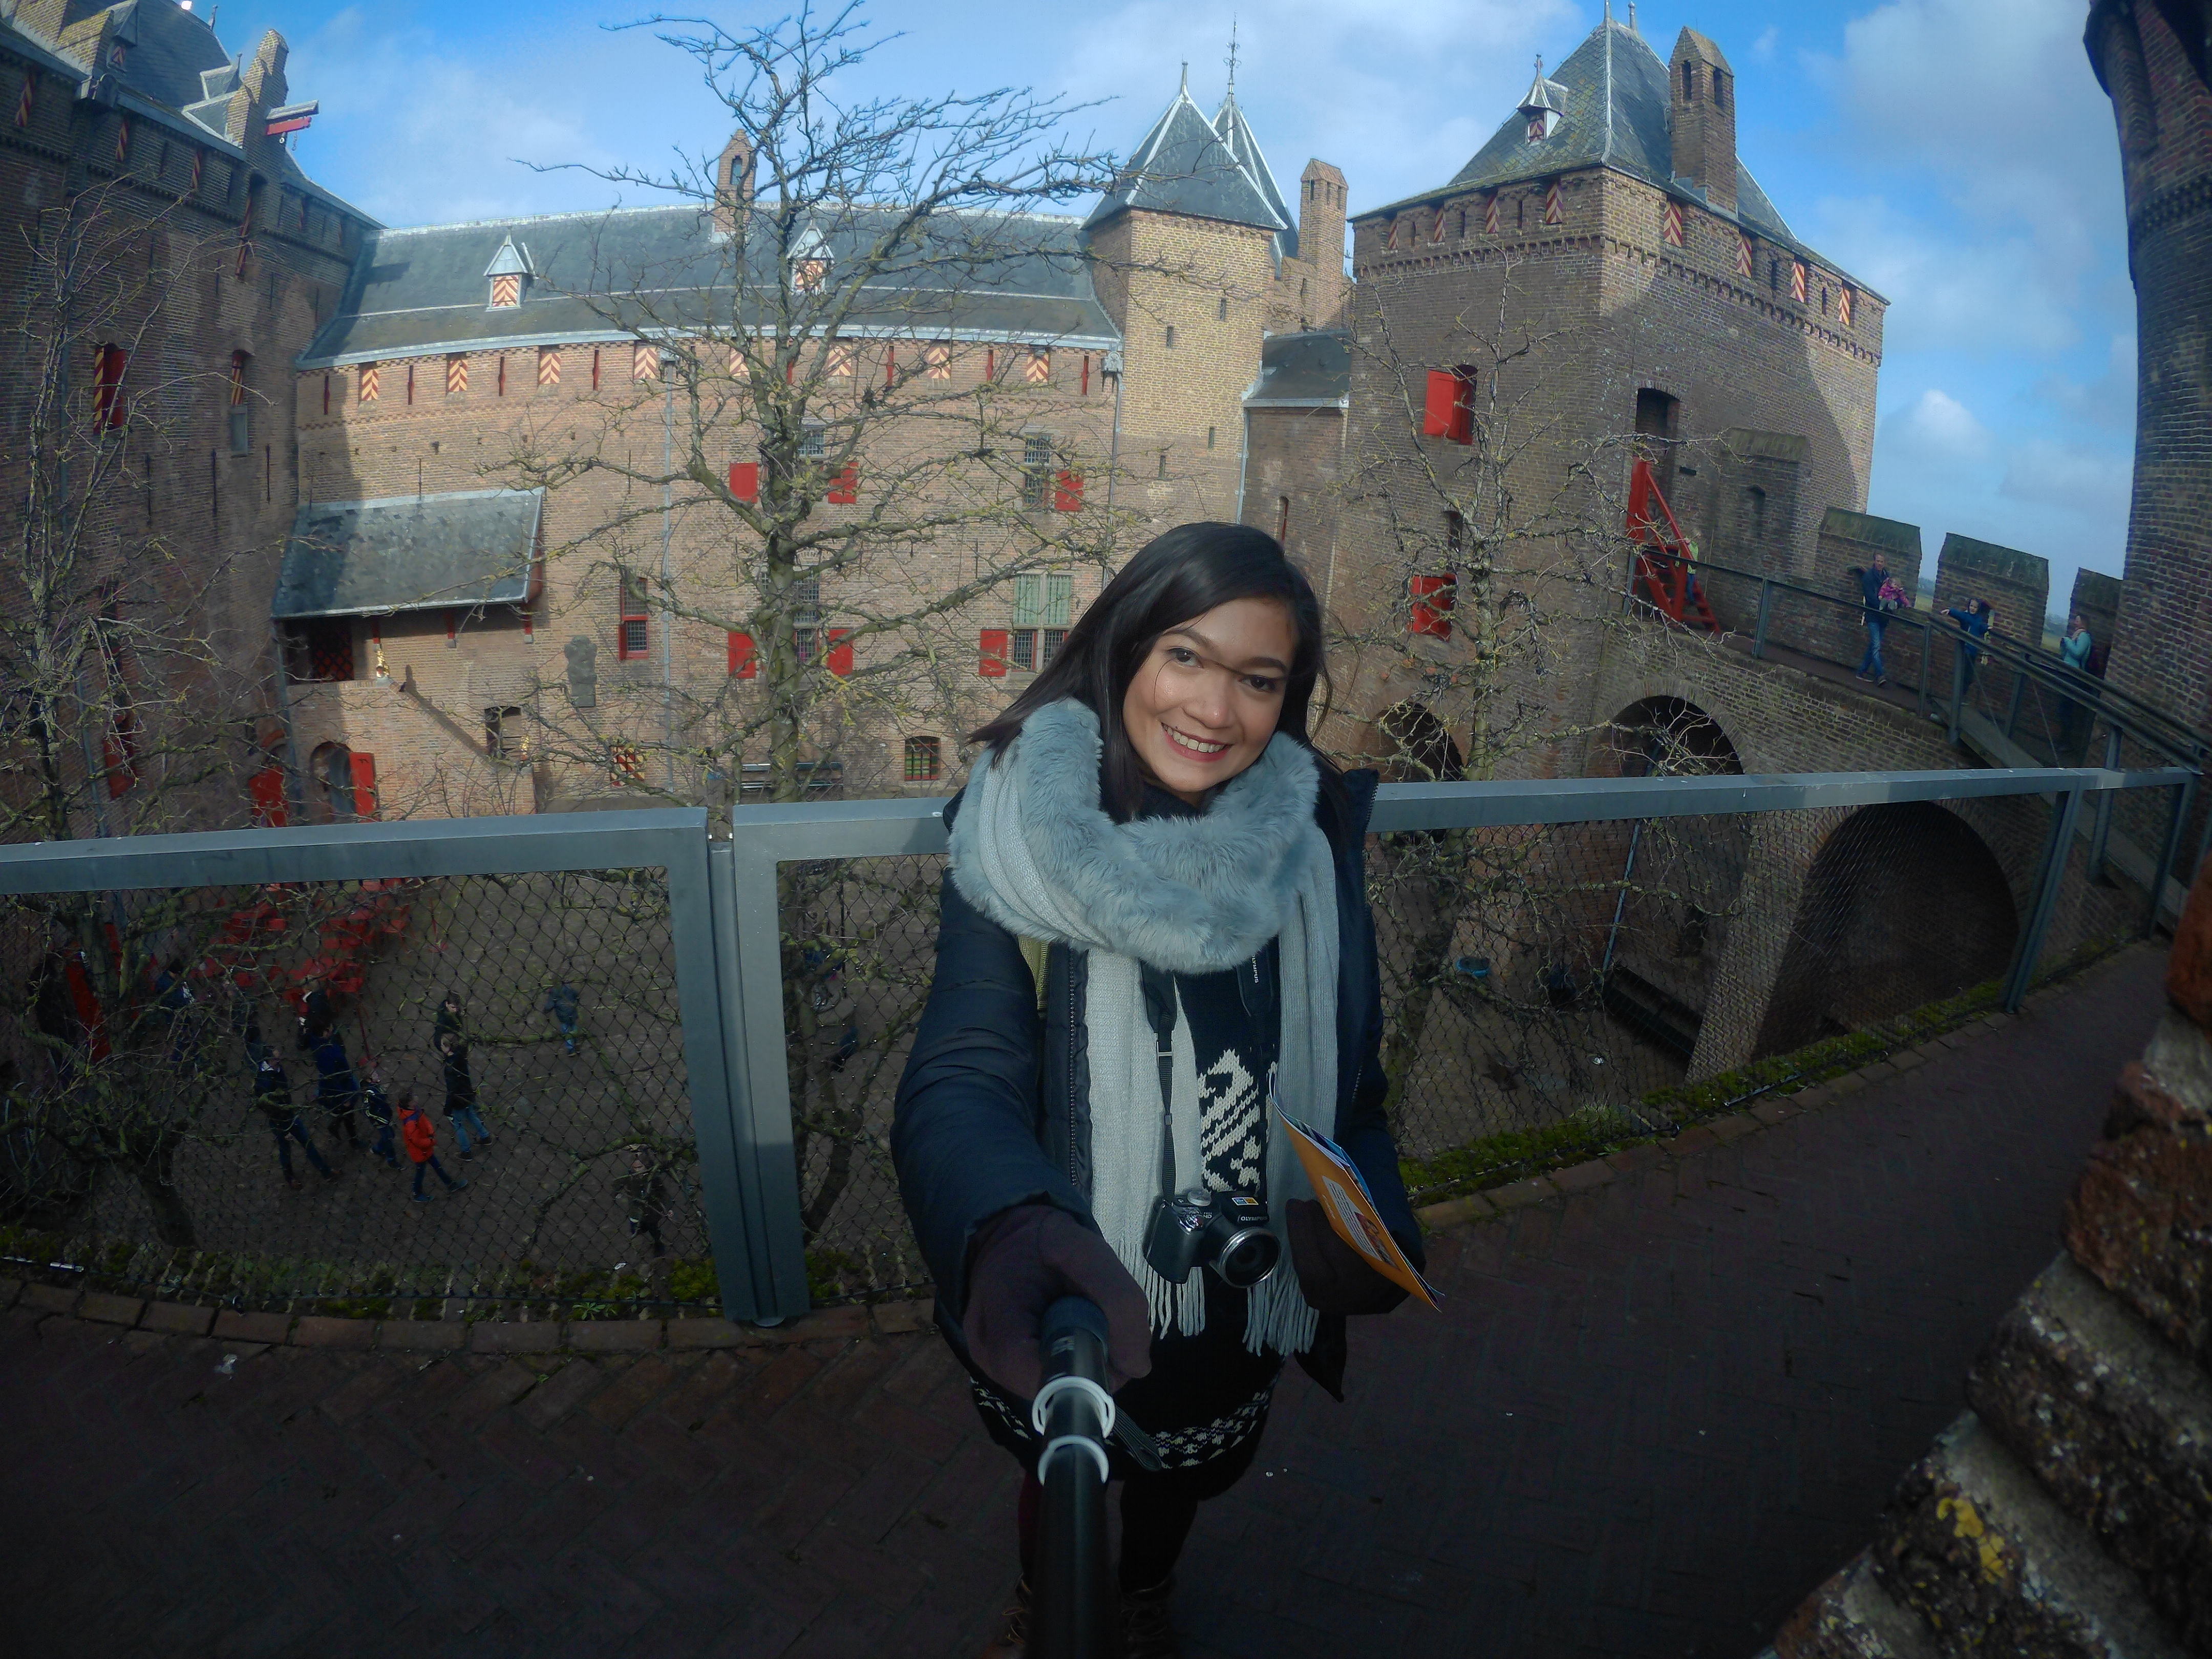 My Castle Muiderslot experience and the guided group tour